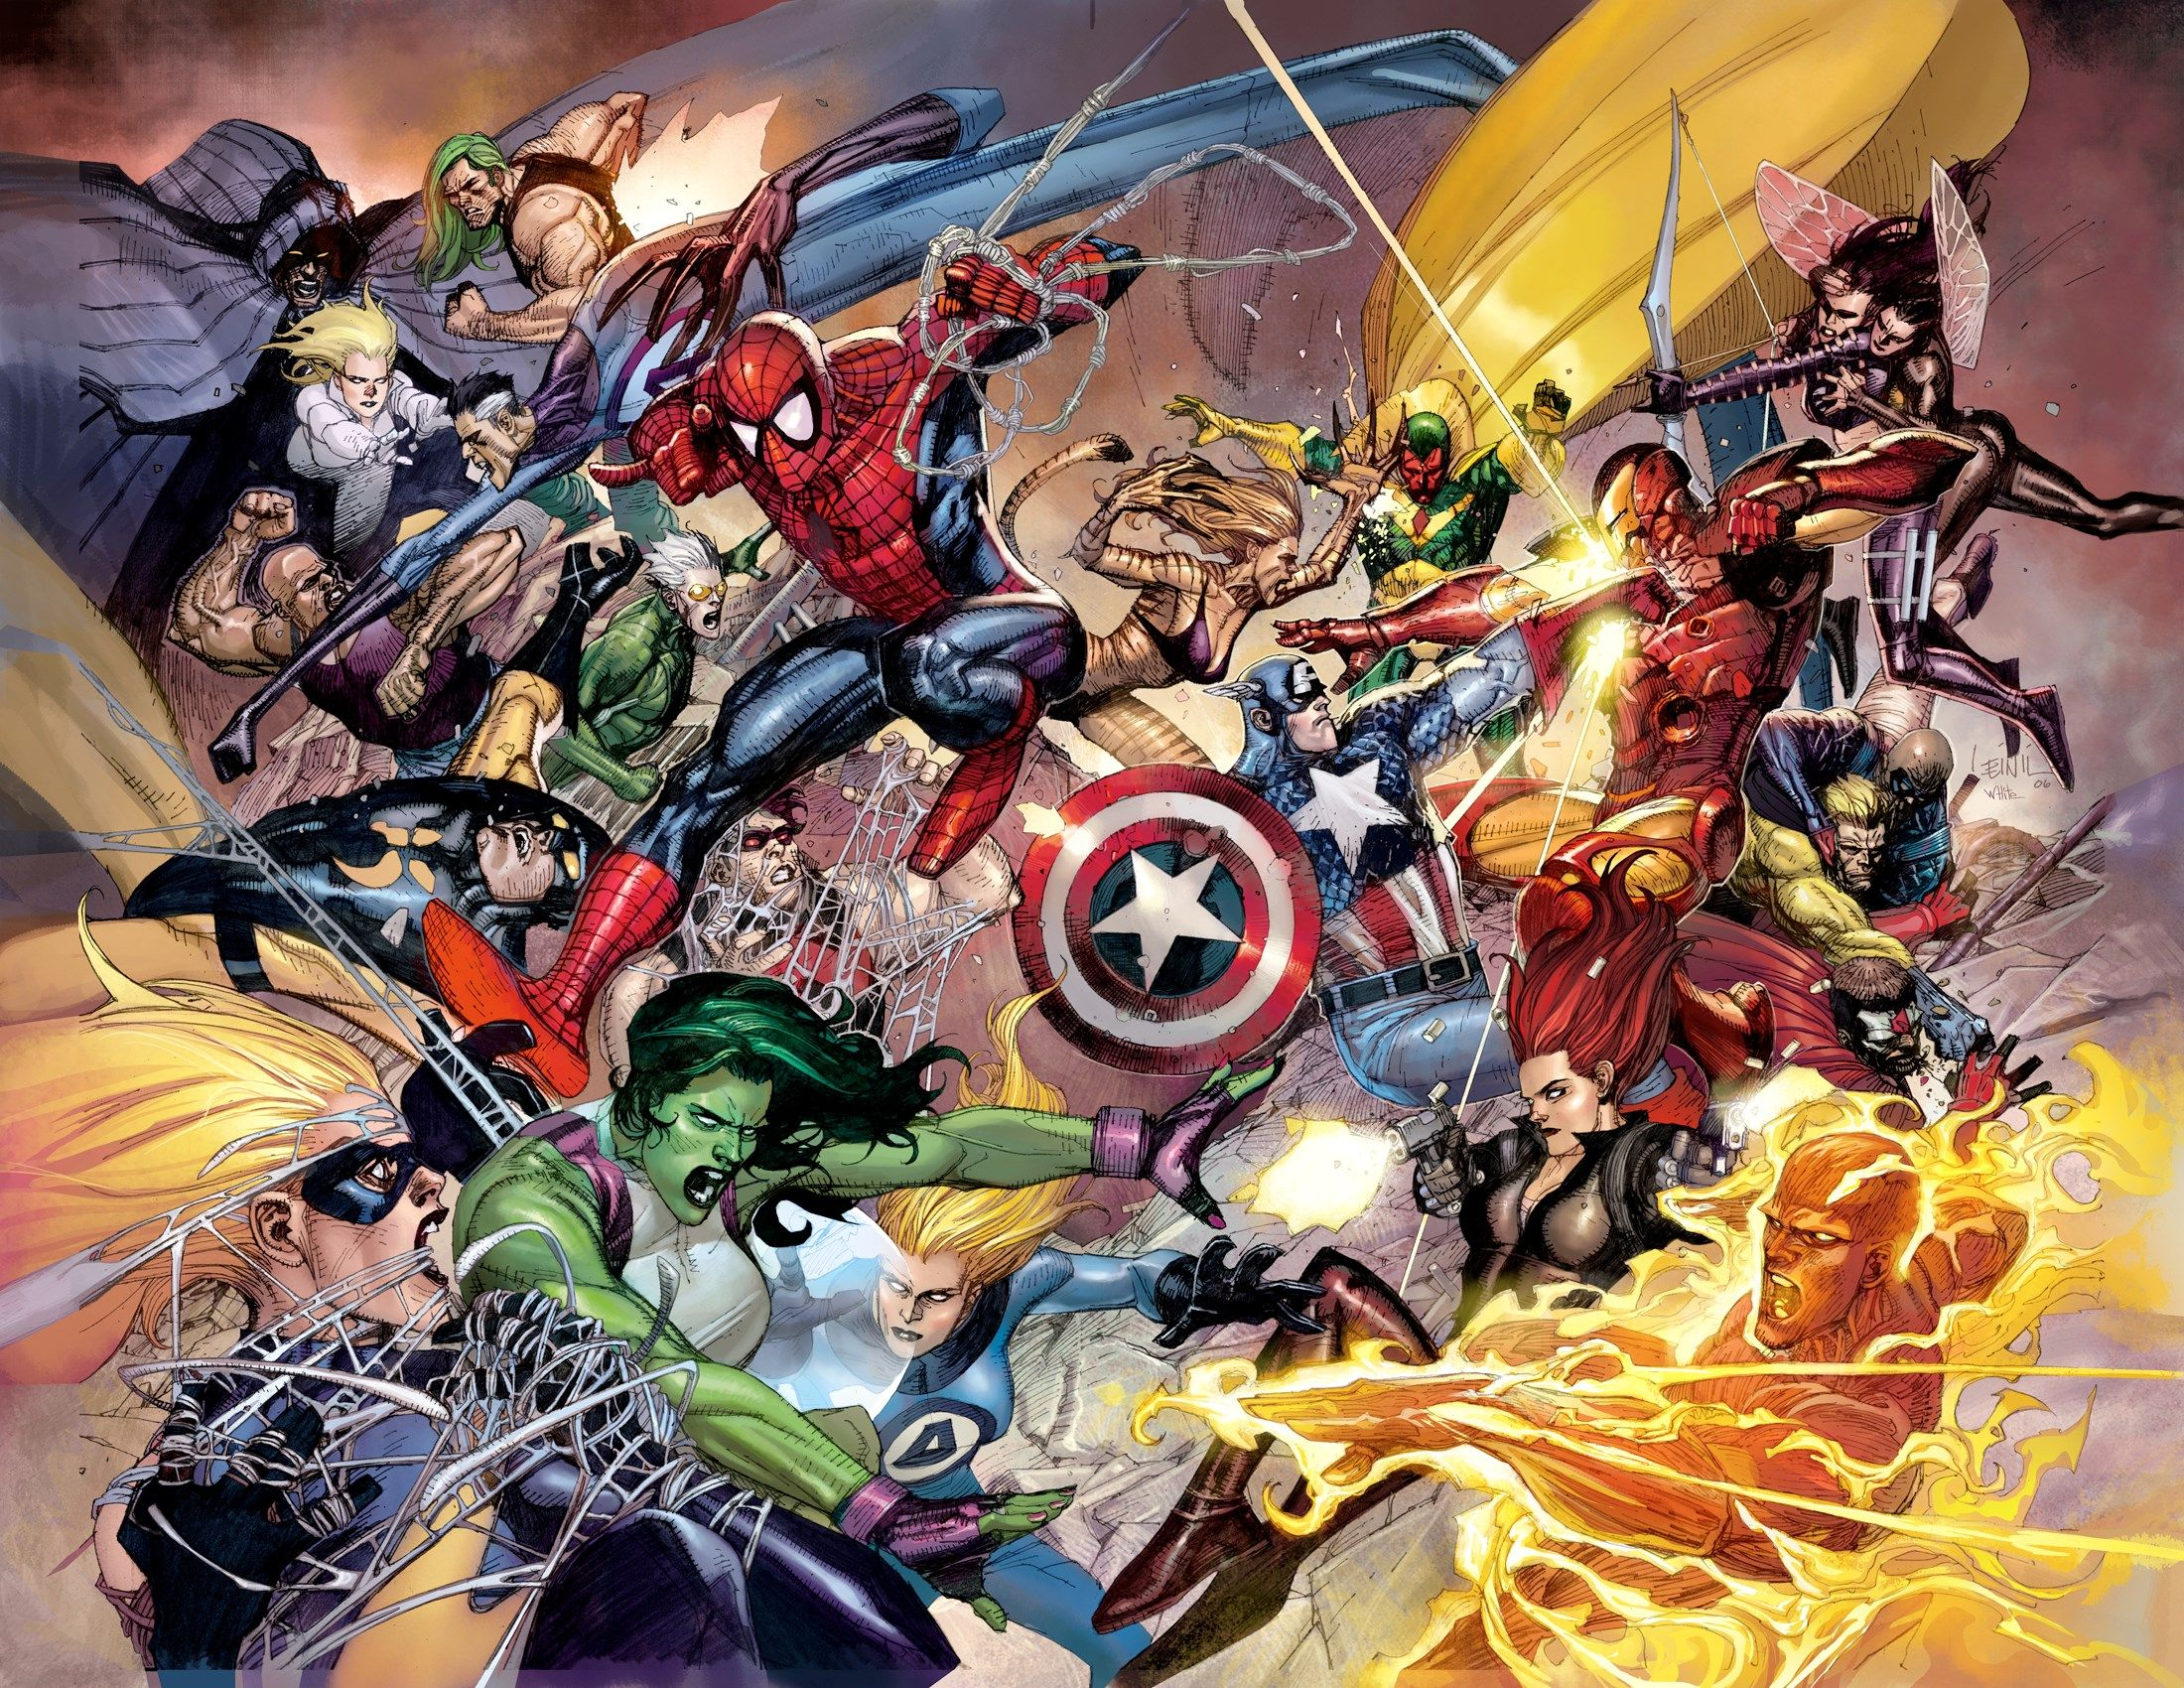 Fantastic Wallpaper Mac Marvel - 5b6a7963afa6436361e0faf3fa25ea30  HD_7035100.jpg